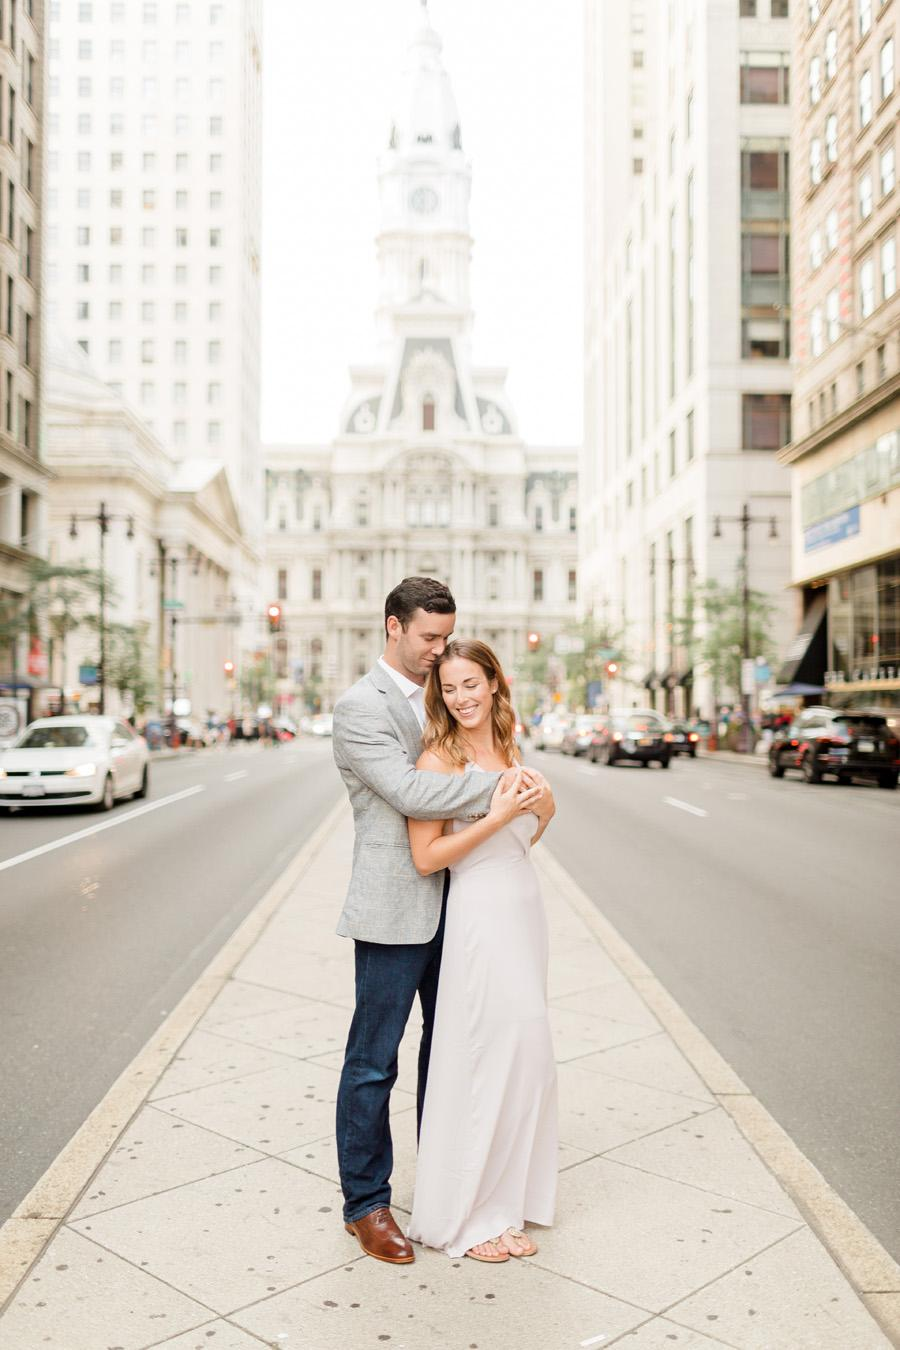 Classic Philadelphia Engagement Session Sarah Canning Photography Philadelphia Photographer Philly In Love Philadelphia Weddings Philadelphia Wedding Vendors Philadelphia Engagements